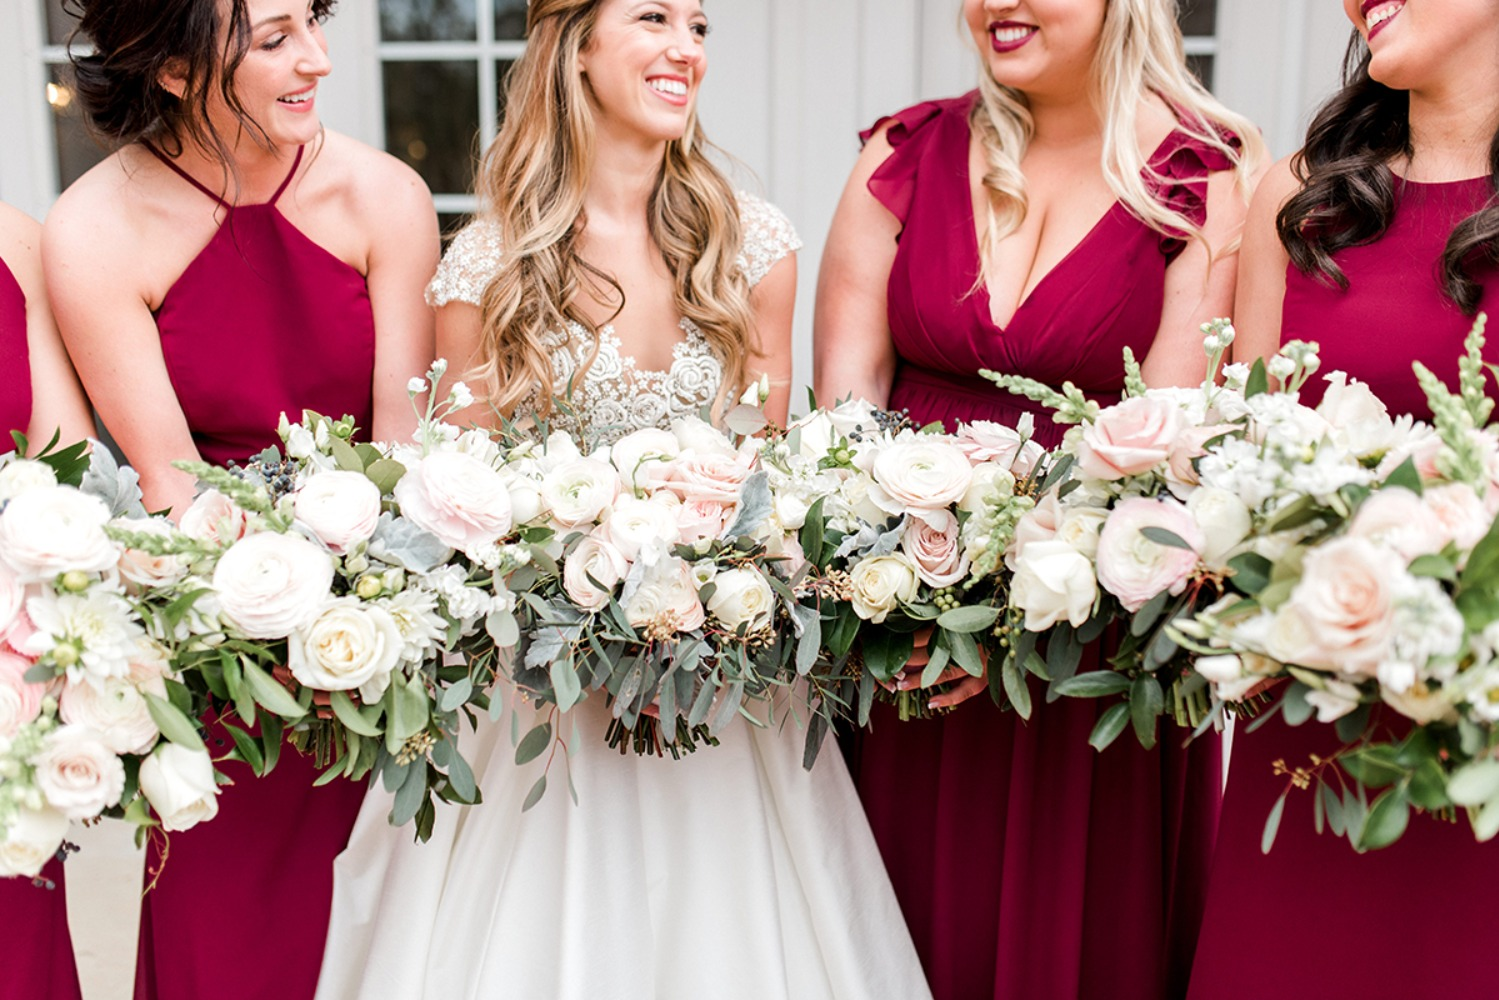 fuchsia bridesmaid dresses with blush bouquets